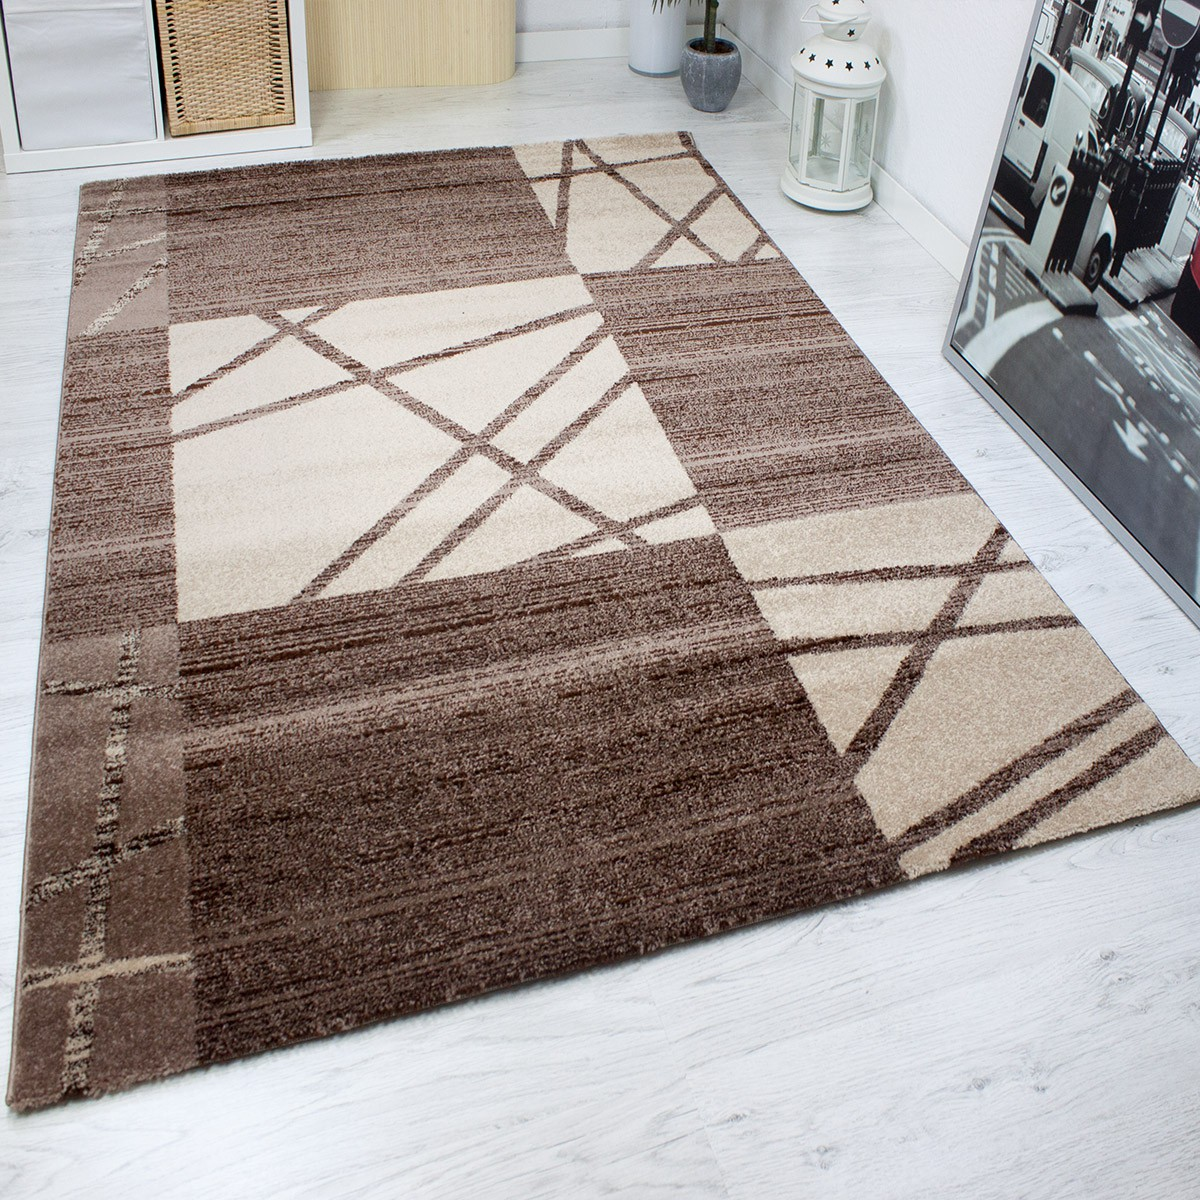 tapis moderne design marron beige carreaux rayures poils ras ebay. Black Bedroom Furniture Sets. Home Design Ideas